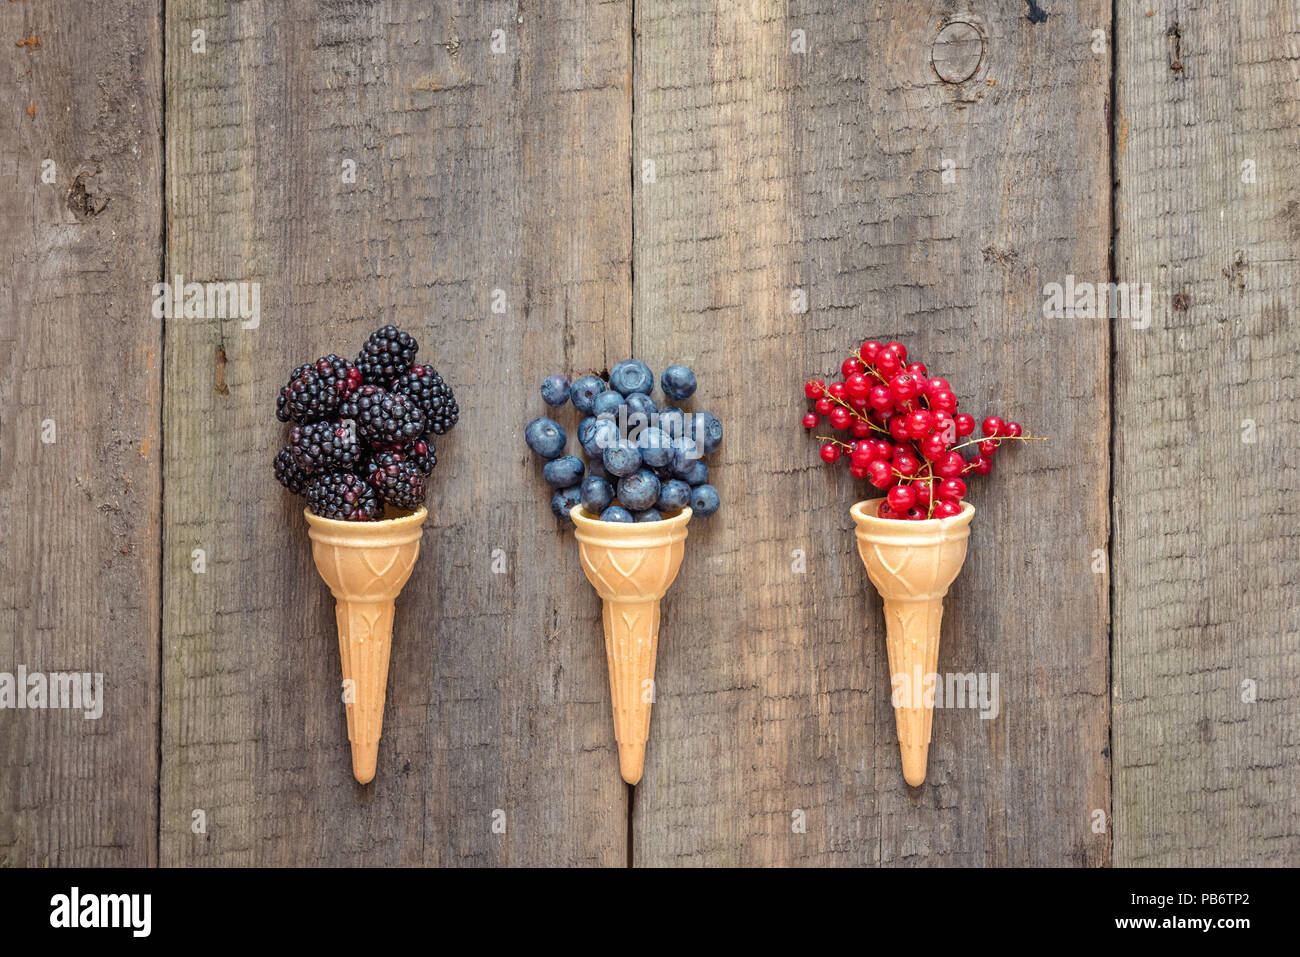 Fresh fruit and berries in ice cream cones. Healthy summer food concept.Top view with space for text. - Stock Image